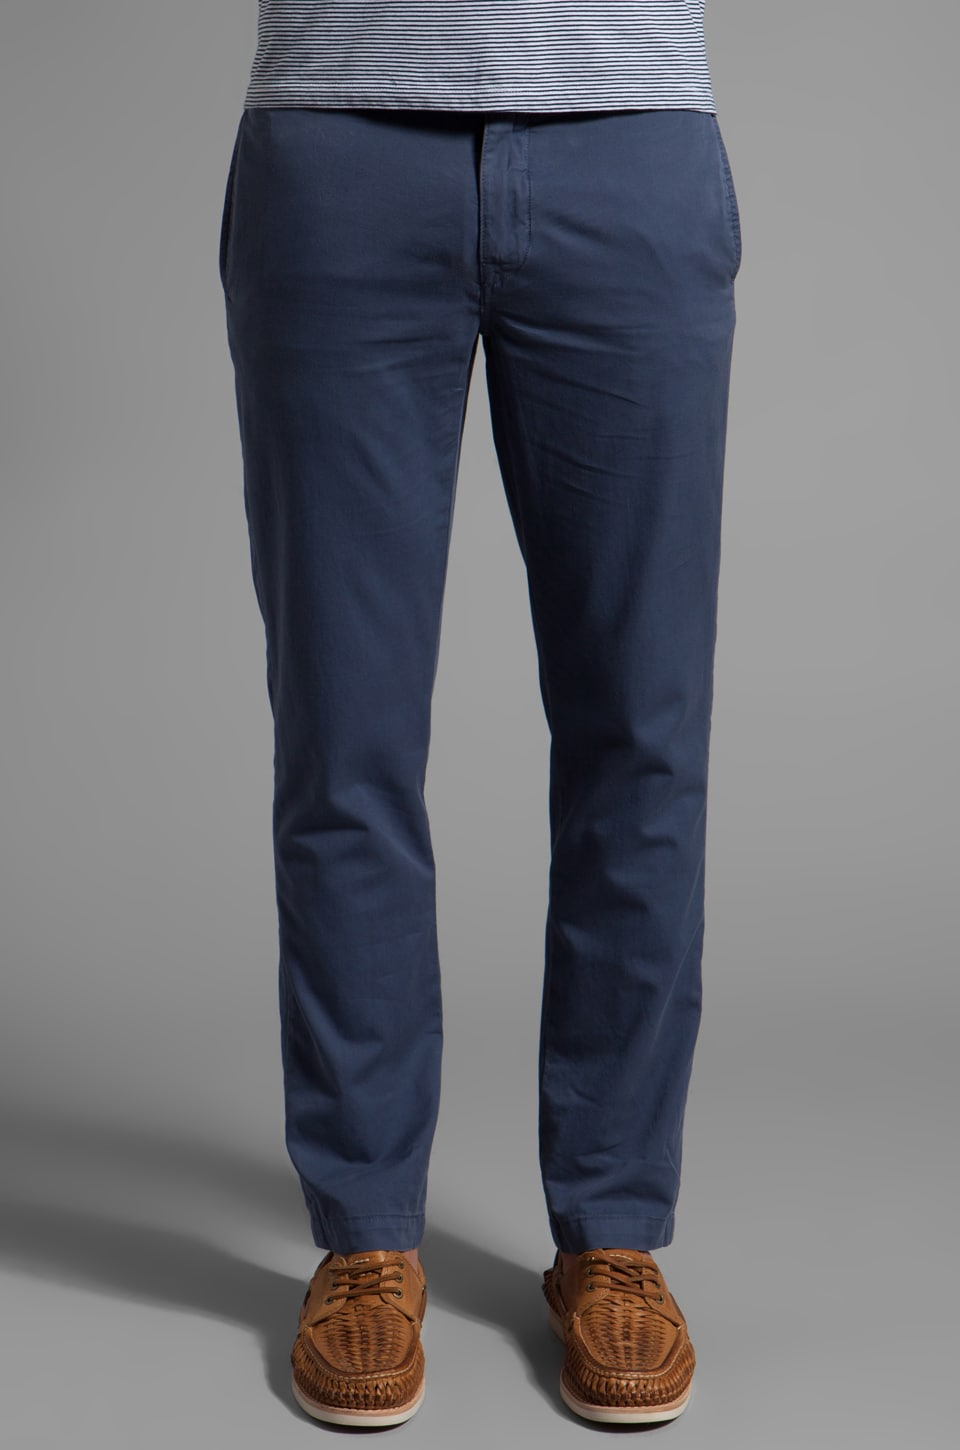 life/after/denim Modern Slim Fit Chino in Greystone